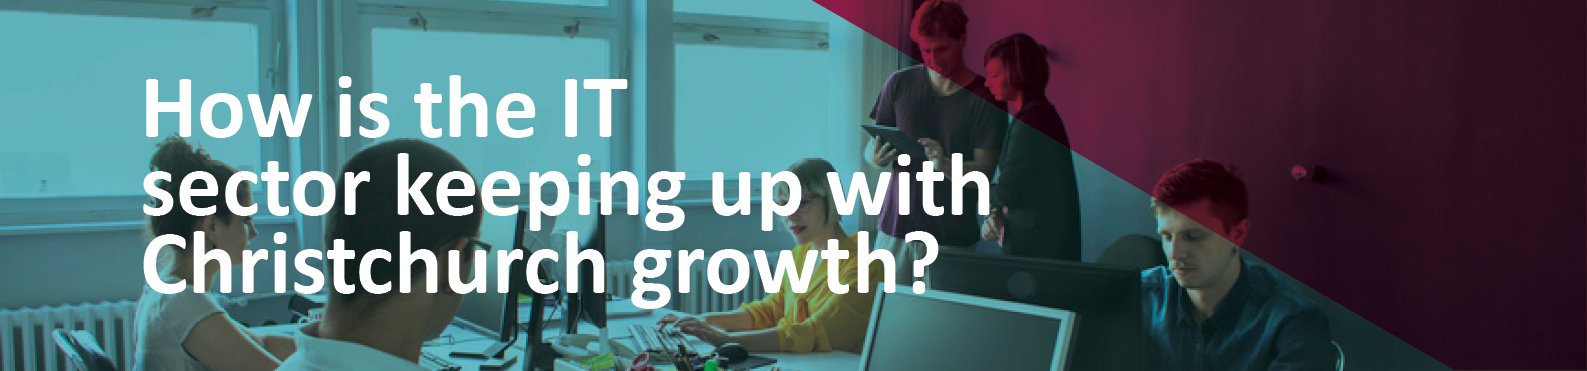 How is the IT sector keeping up with Christchurch growth? - Sourced Report March 2015